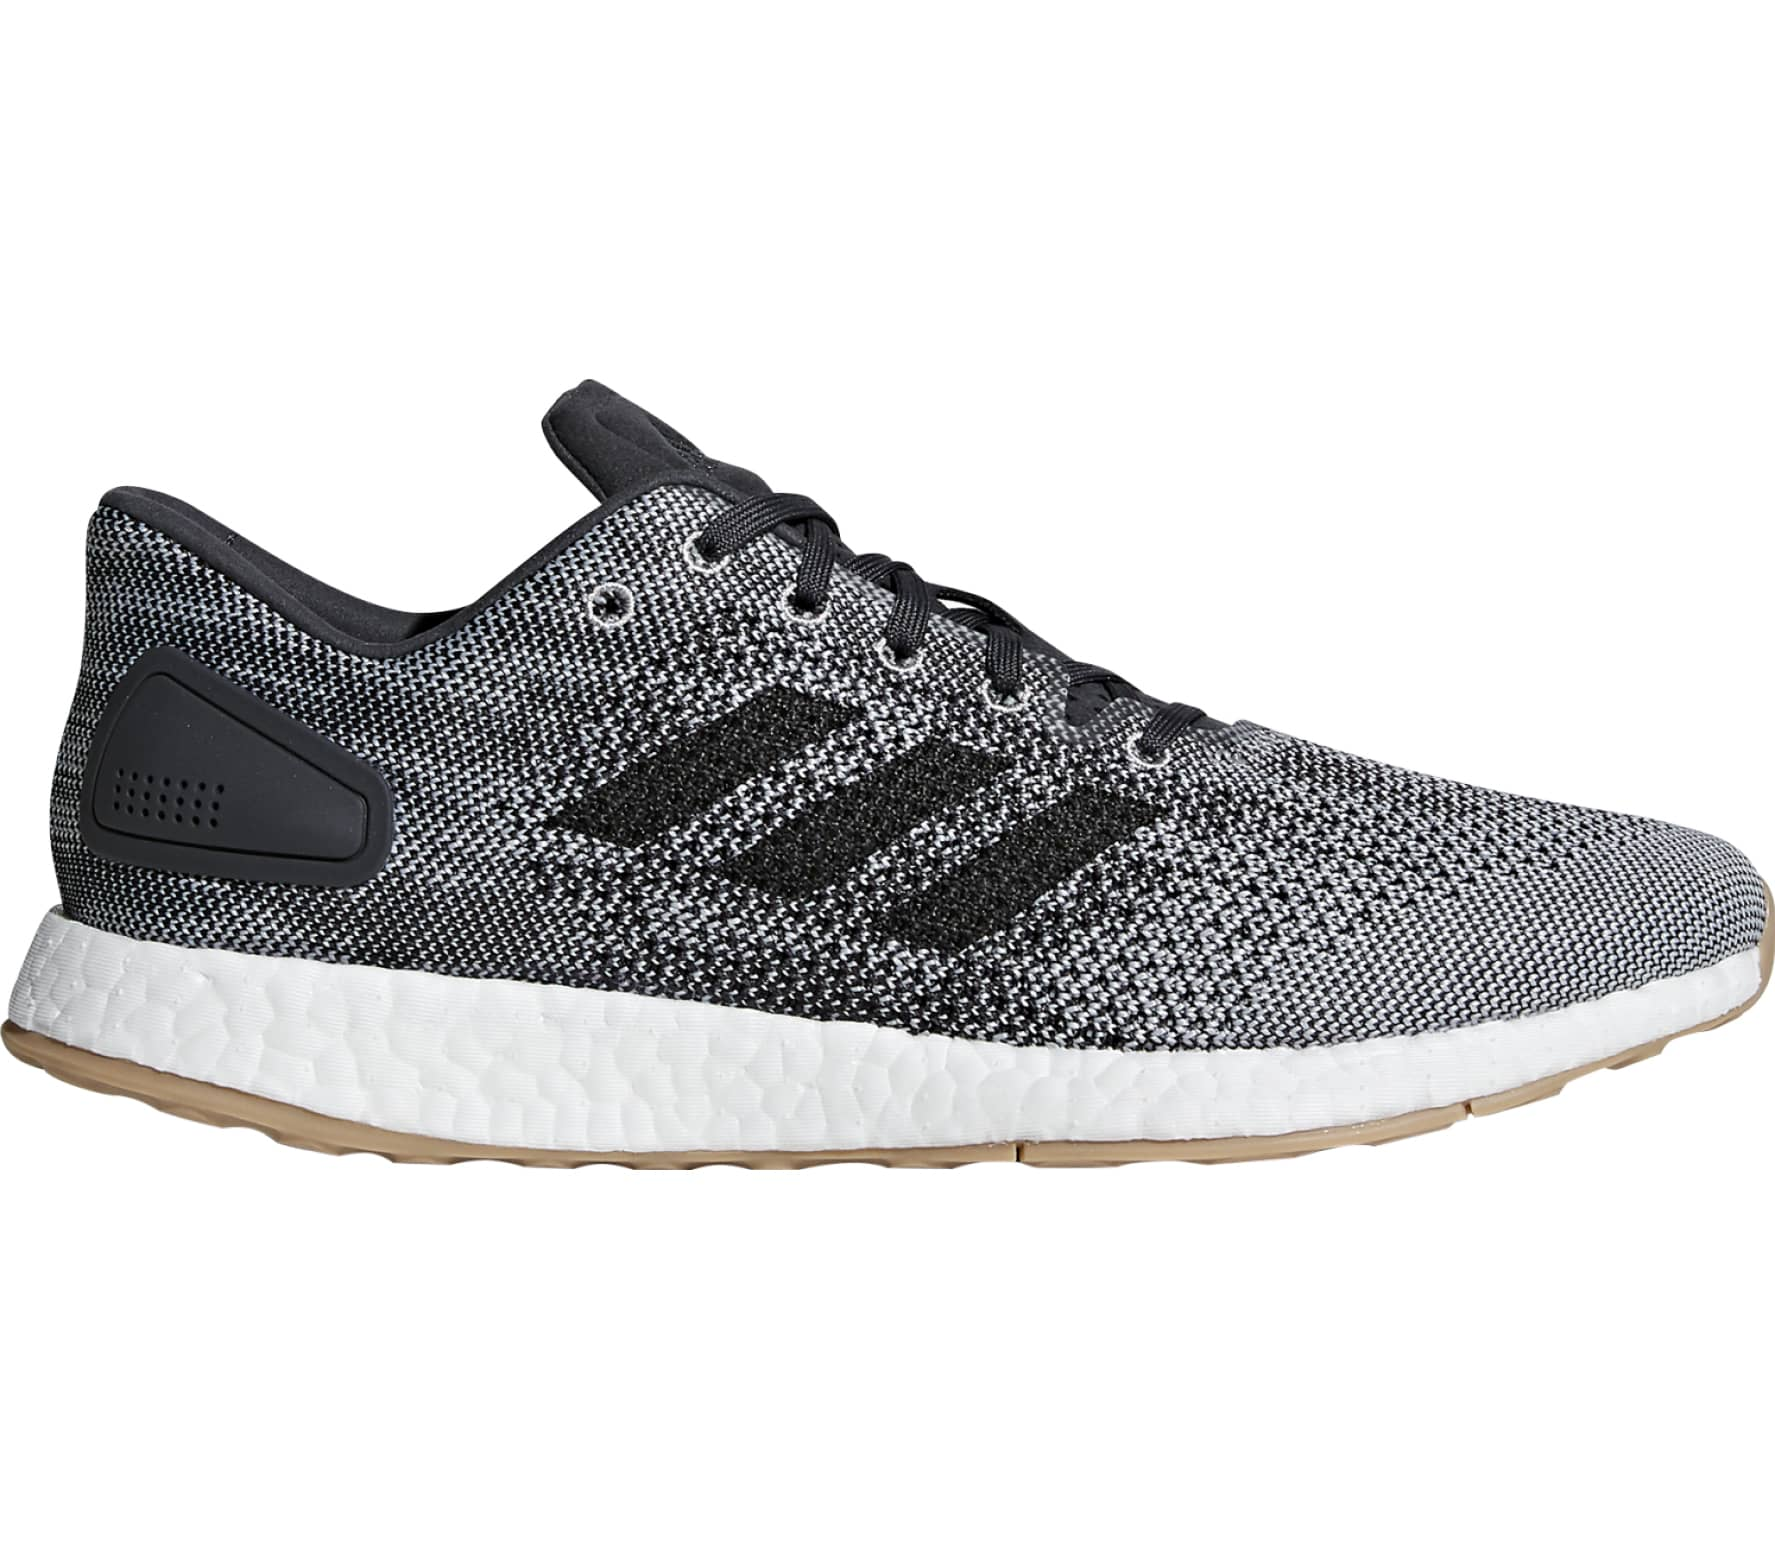 Adidas Pure Boost DPR men's running shoes (dark greyblack)